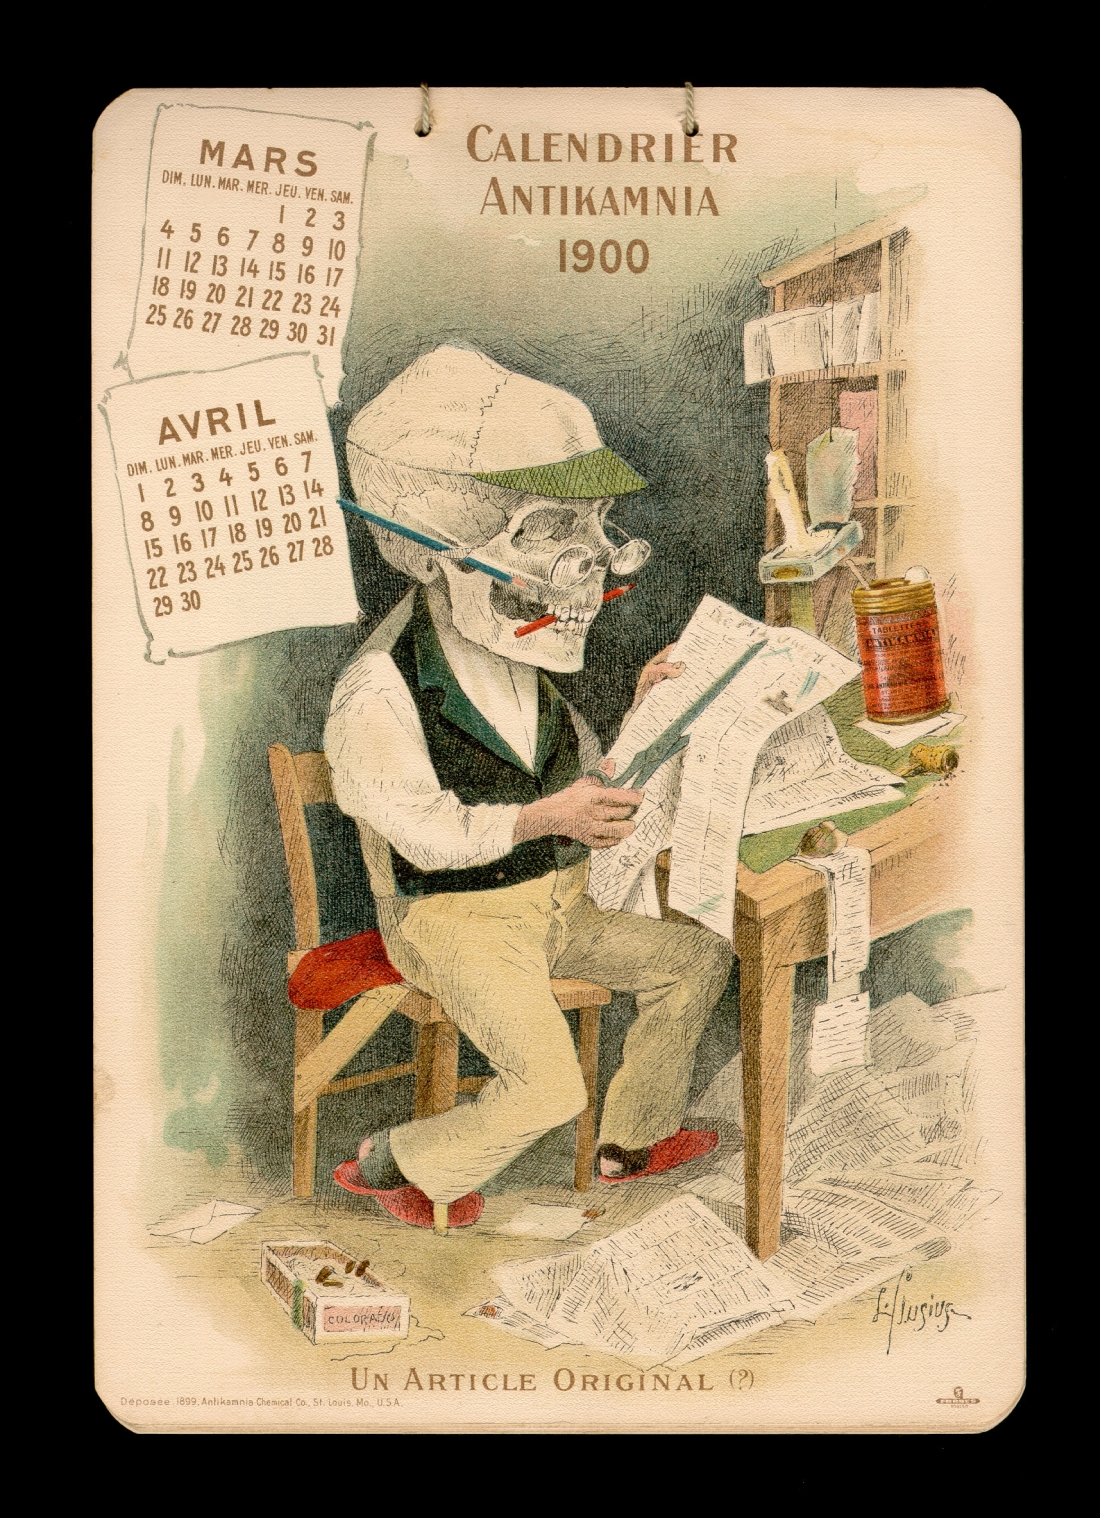 Antikamnia medical calendar 1900